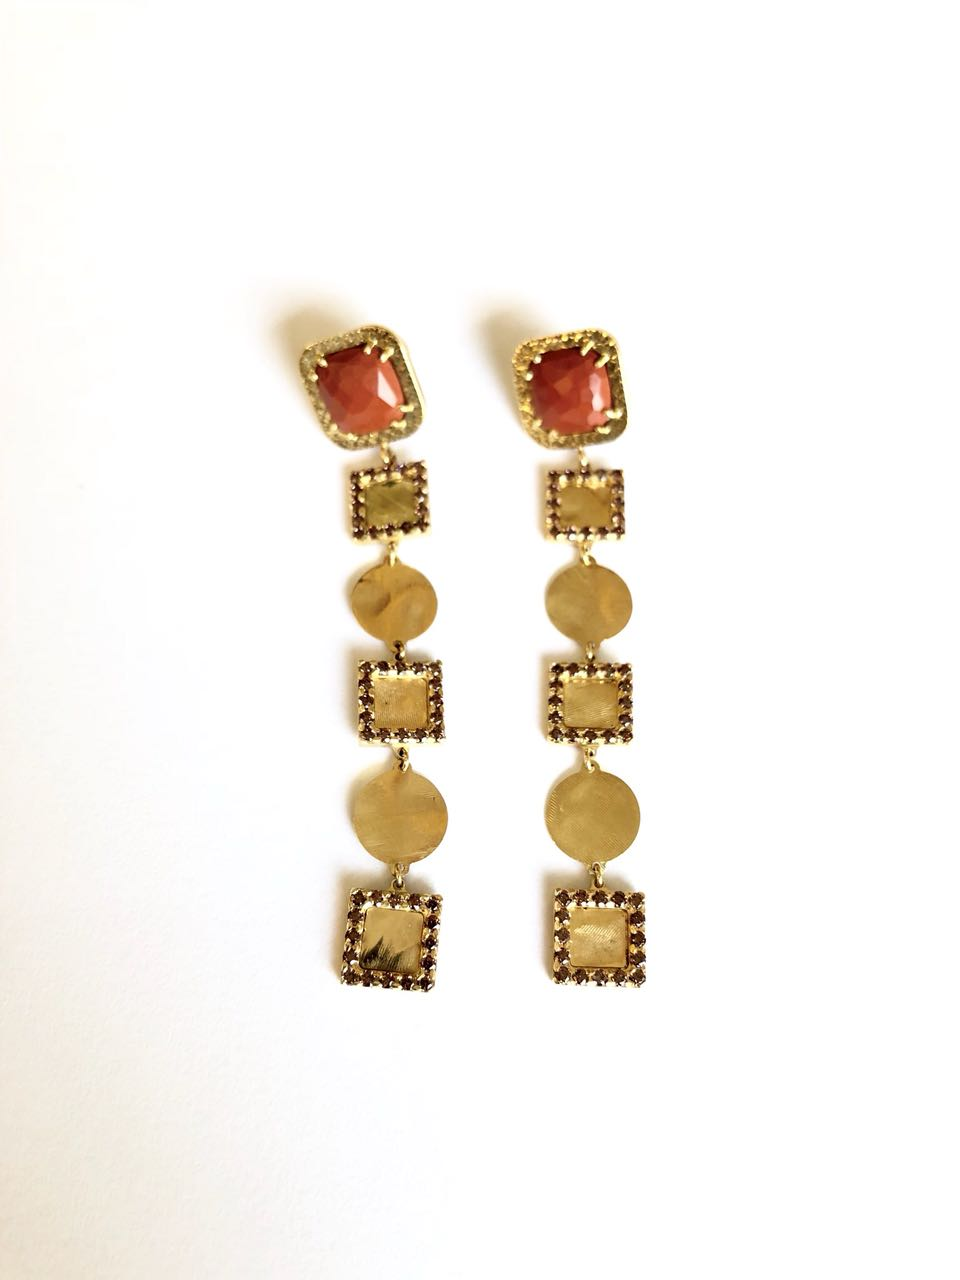 Earrings with Red Jasper and Spinel Fiorella